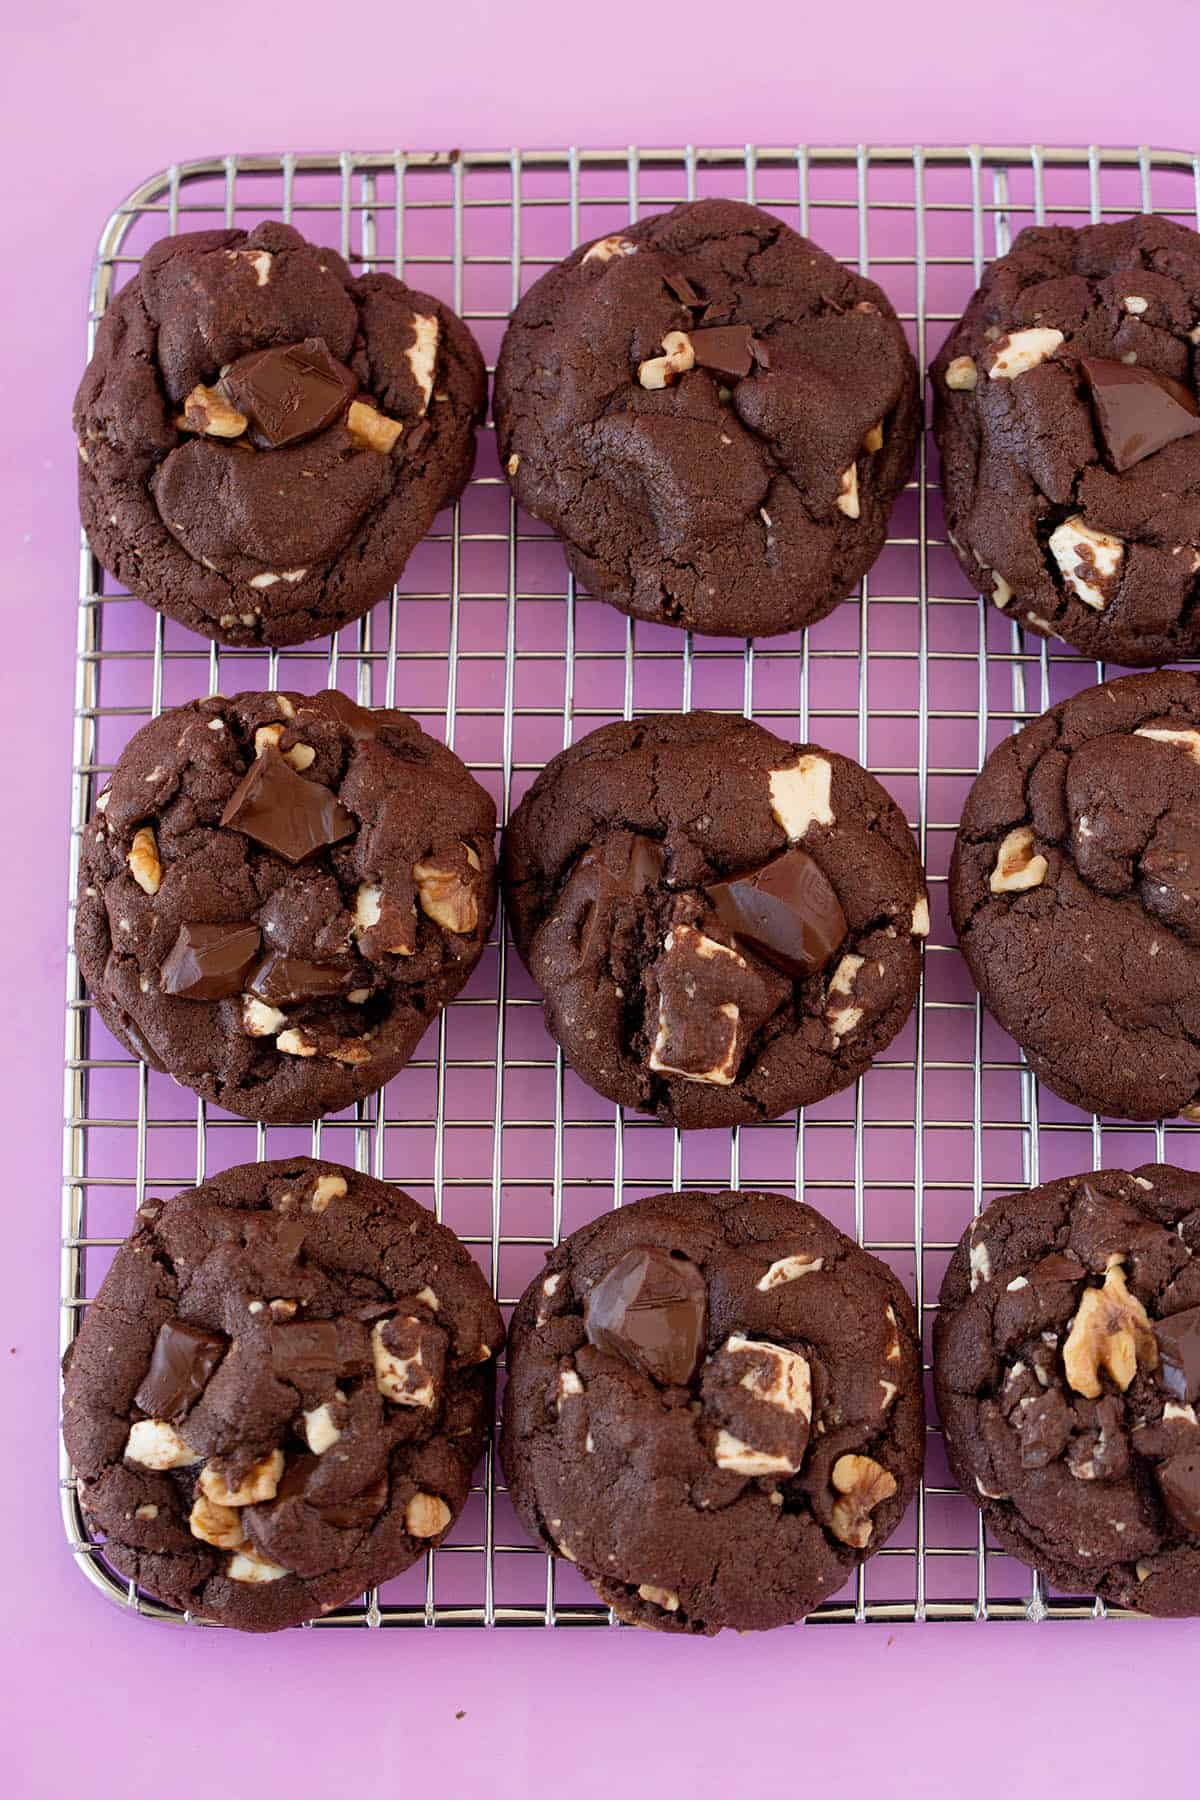 Chunky walnut chocolate cookies on a pink background.